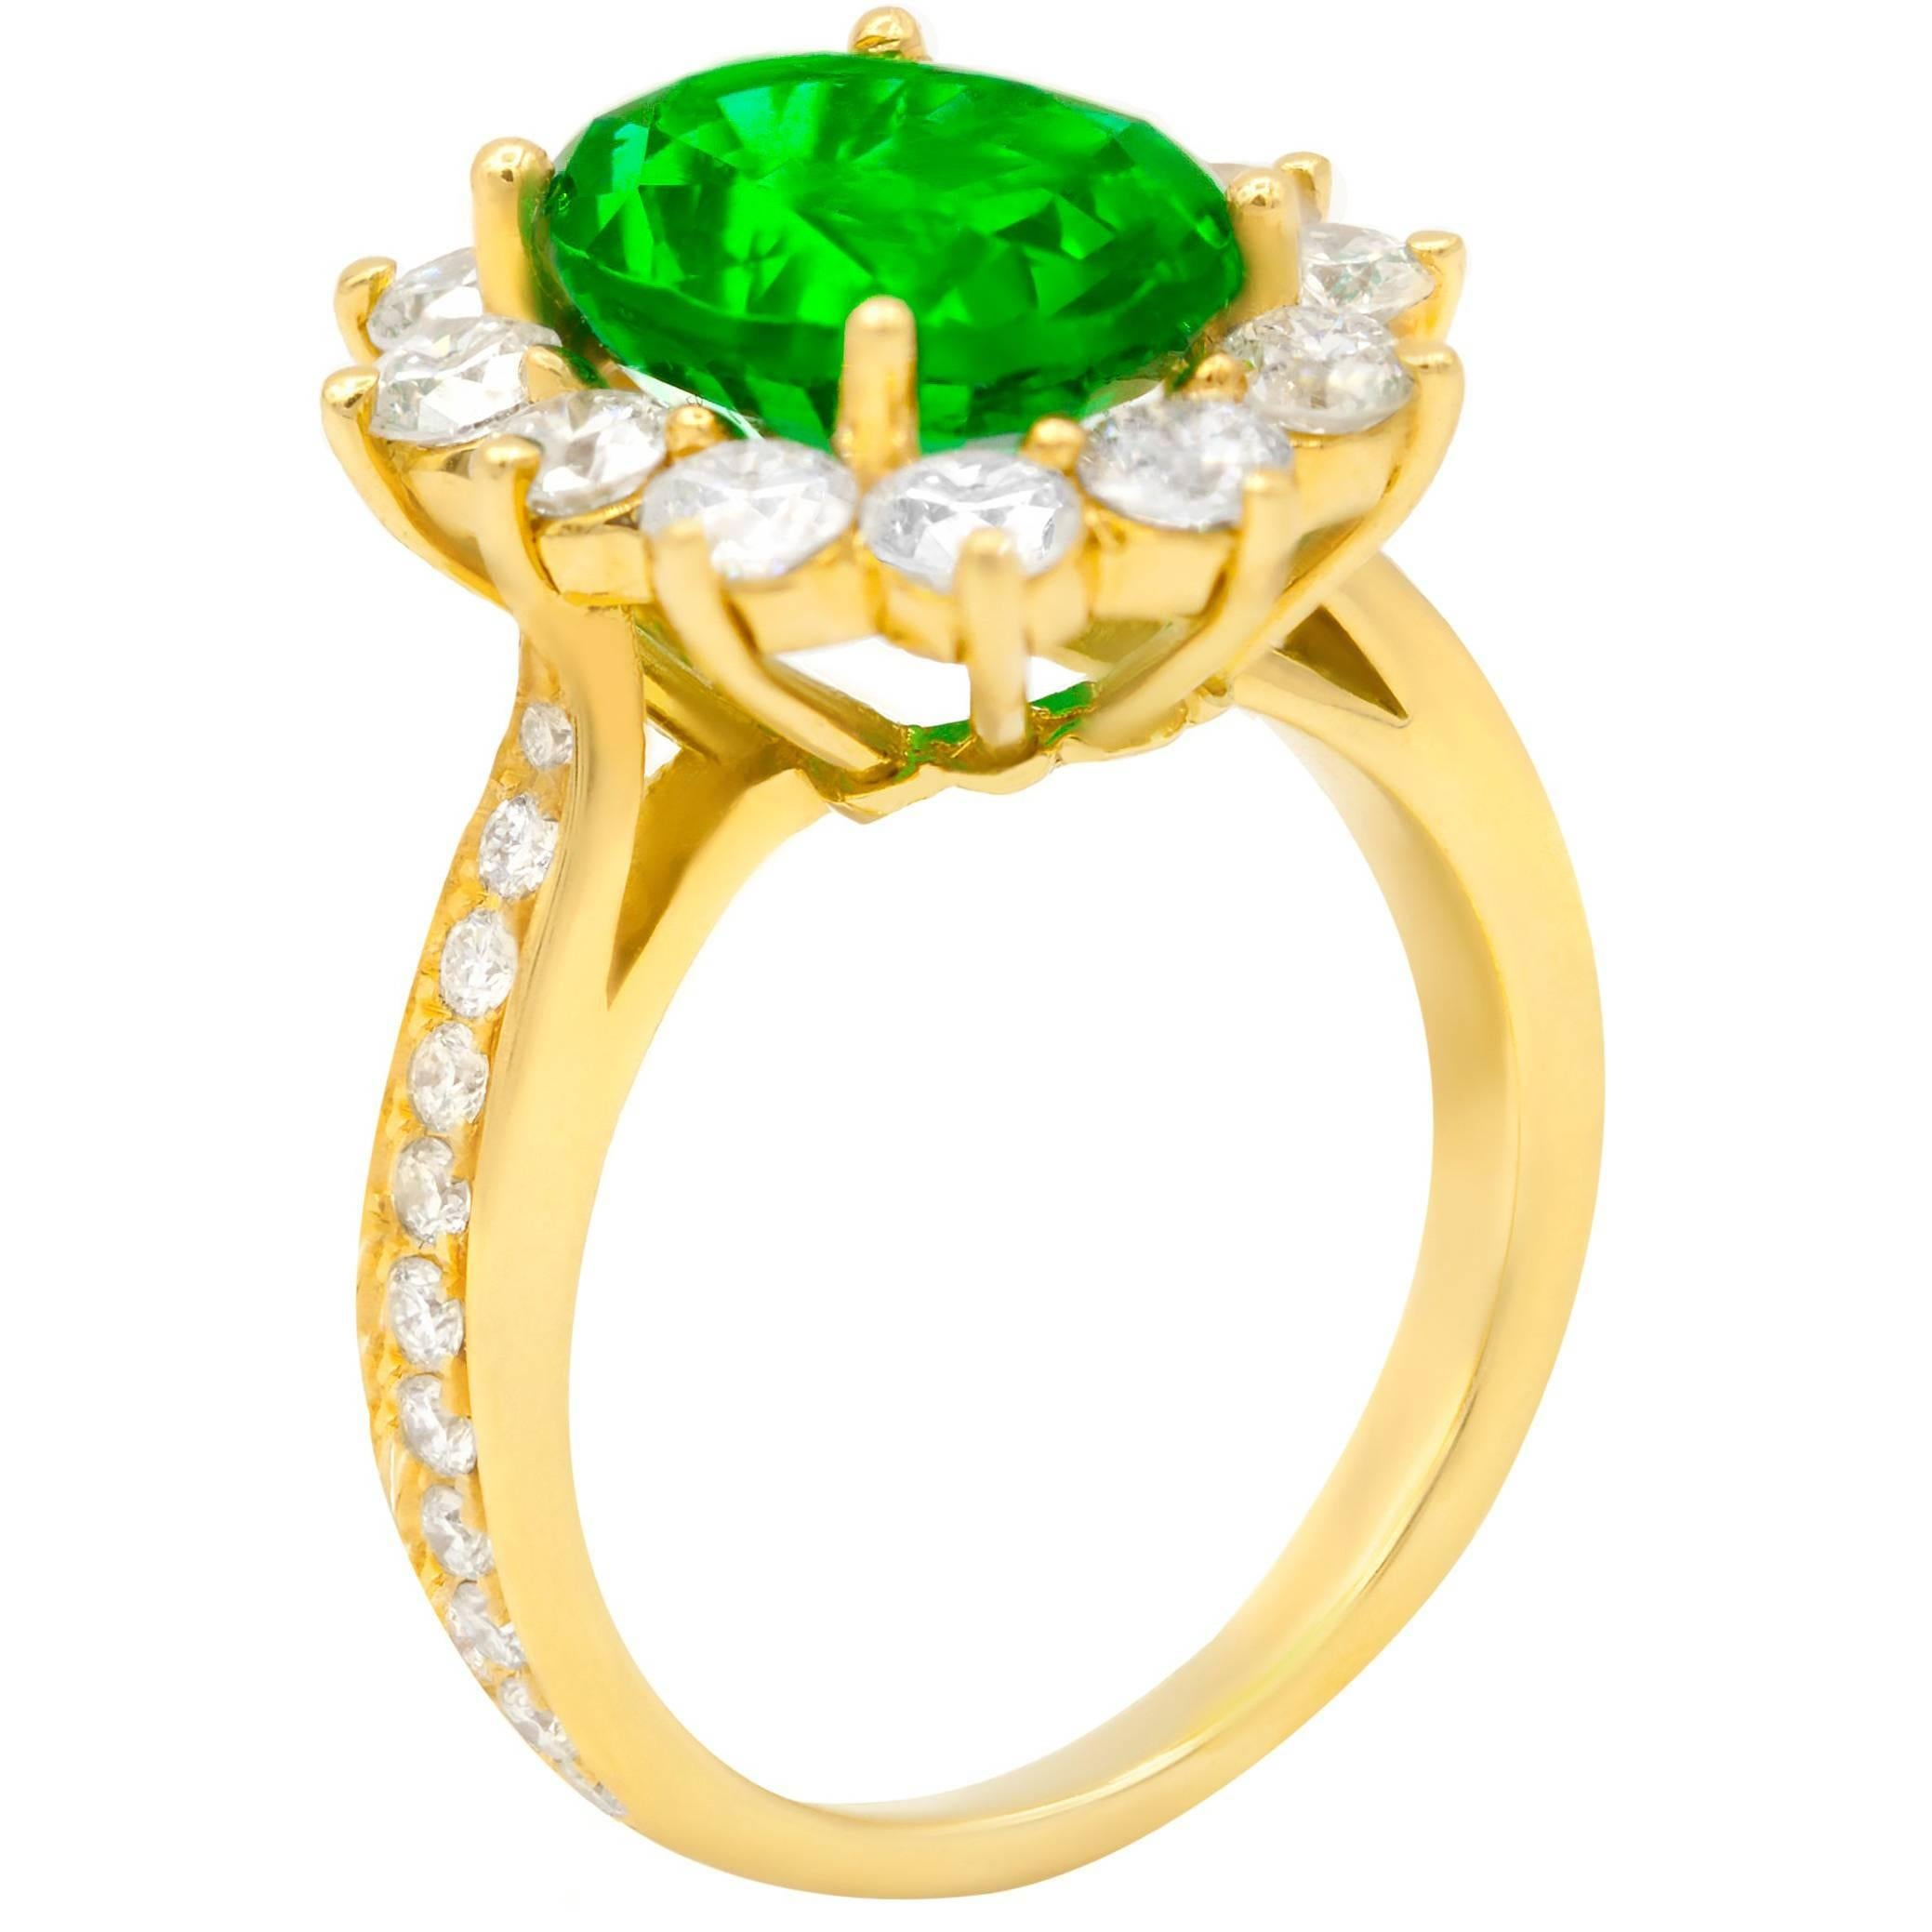 GIA Certified 4.20 Carat Green Emerald in Halo by 1.80 Carat of Diamonds Ring